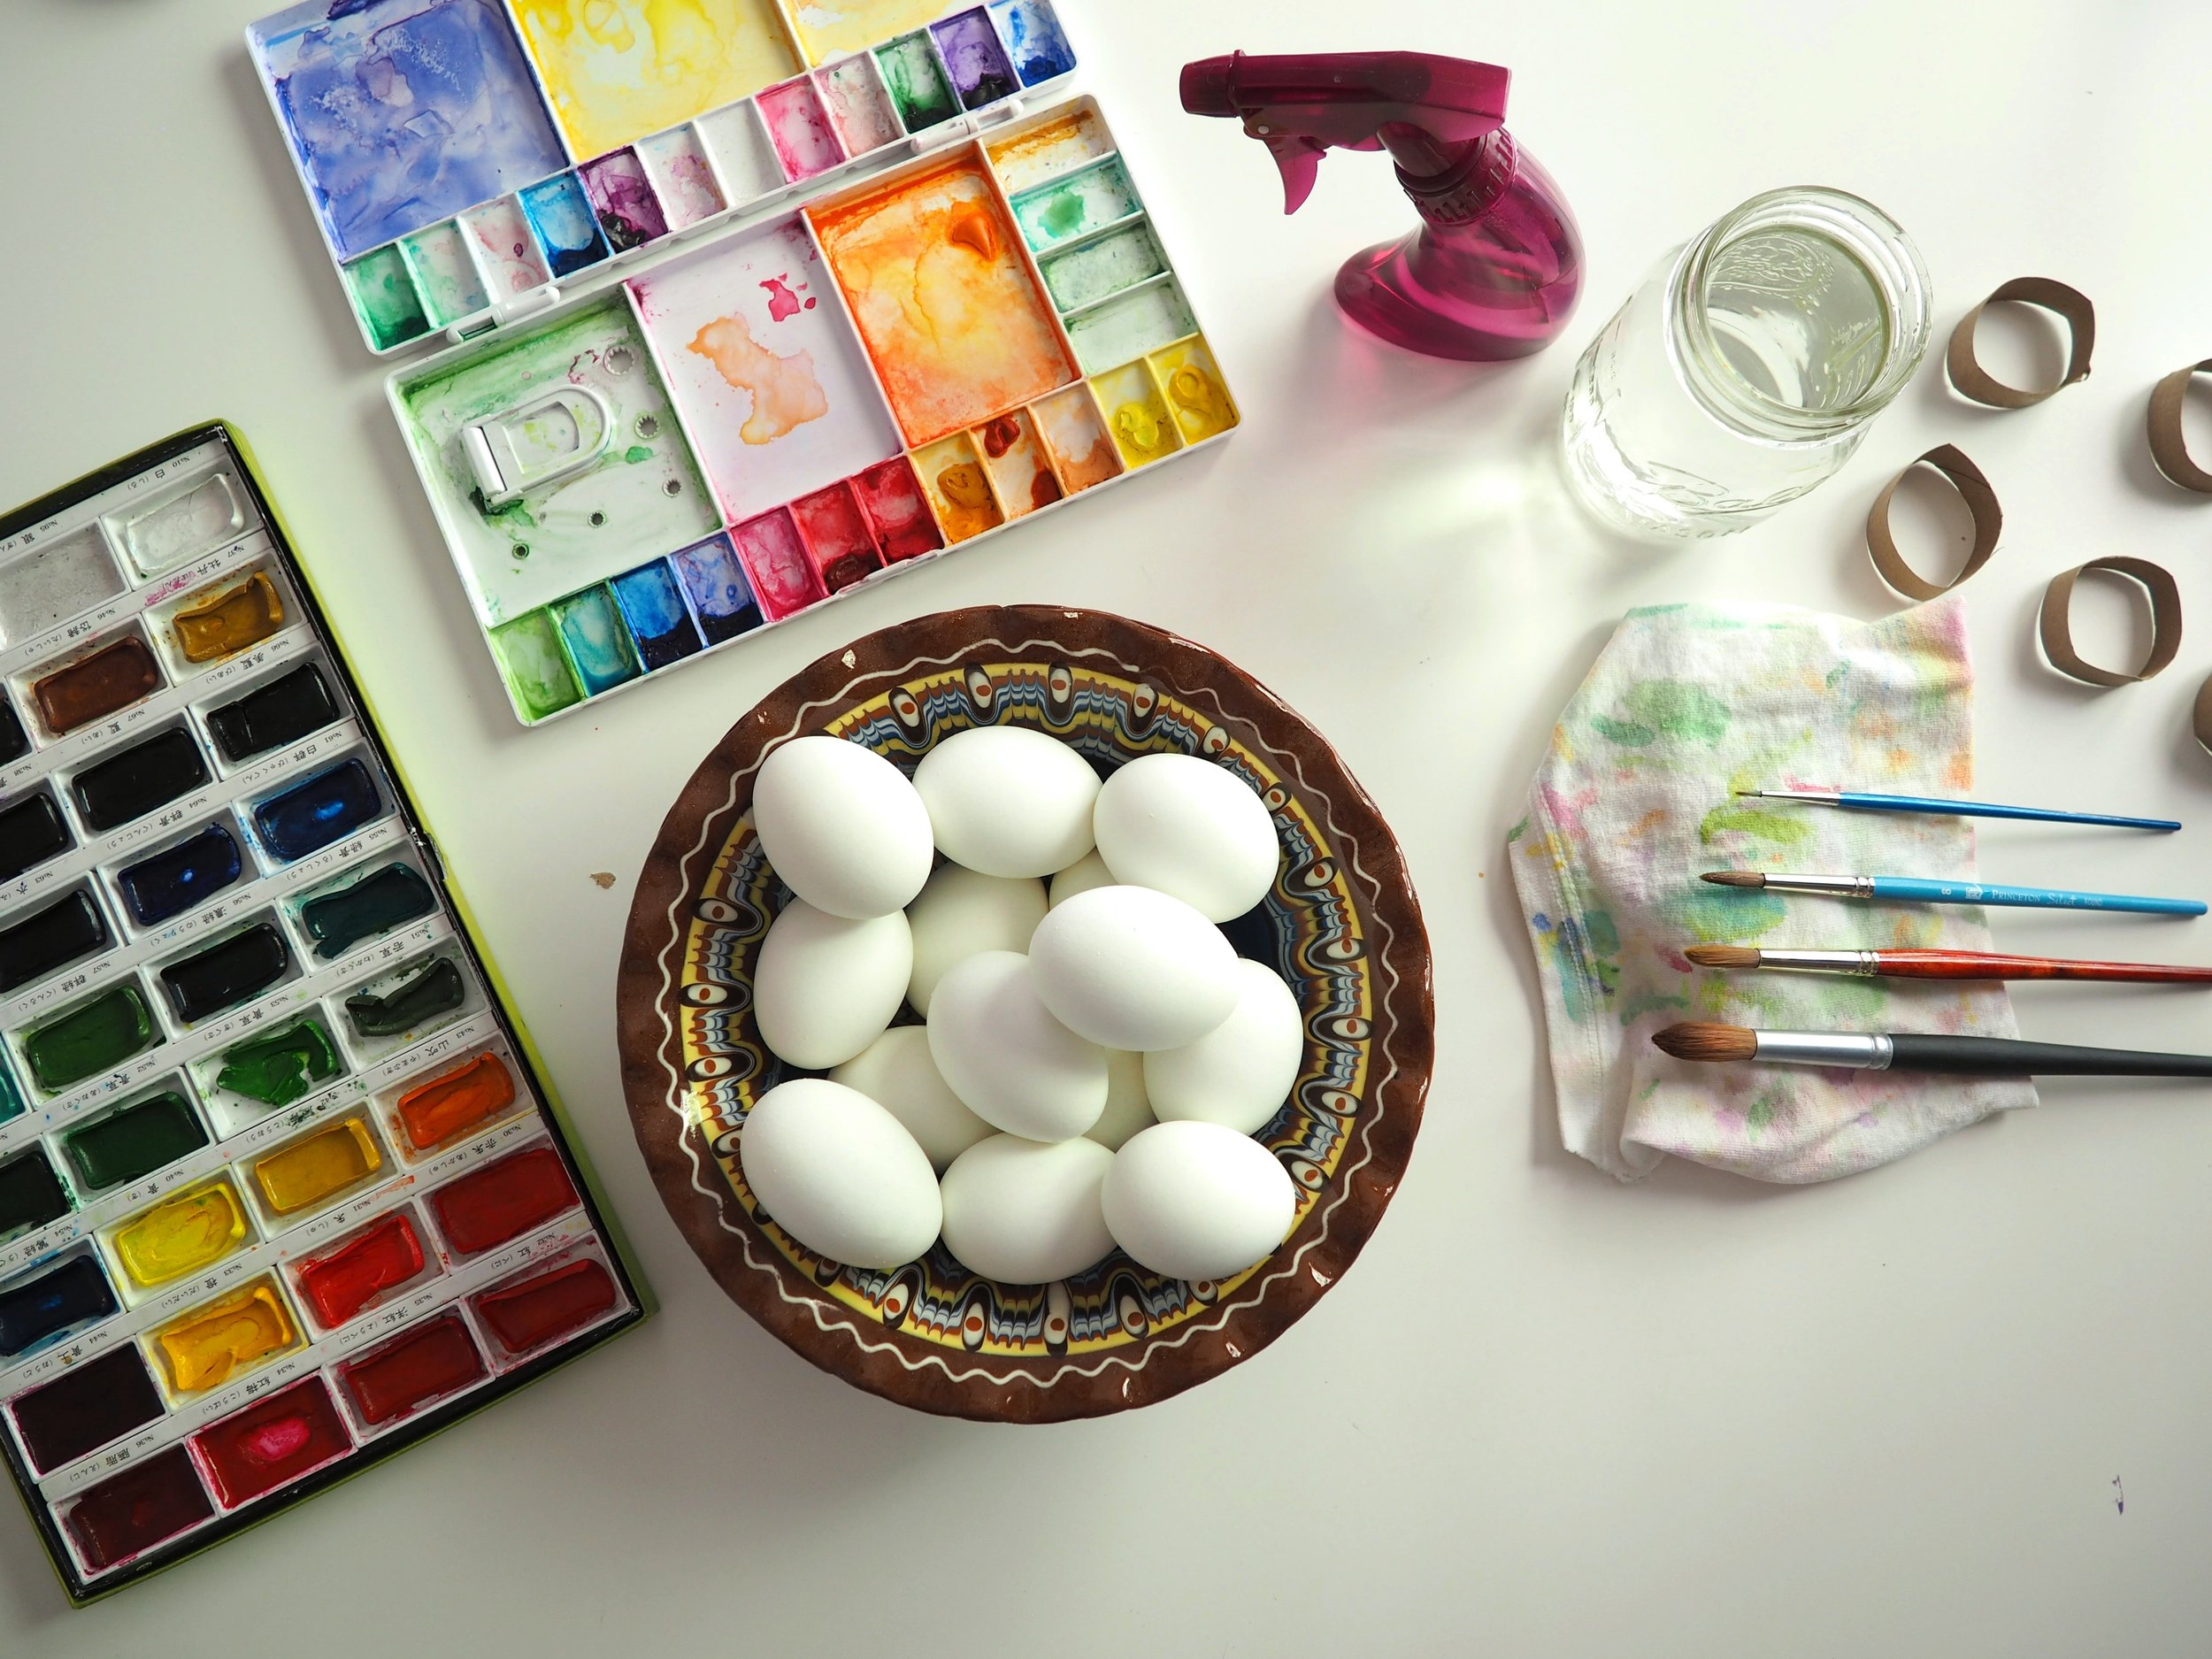 You see? Just hard boiled eggs, watercolors, a brush or two..